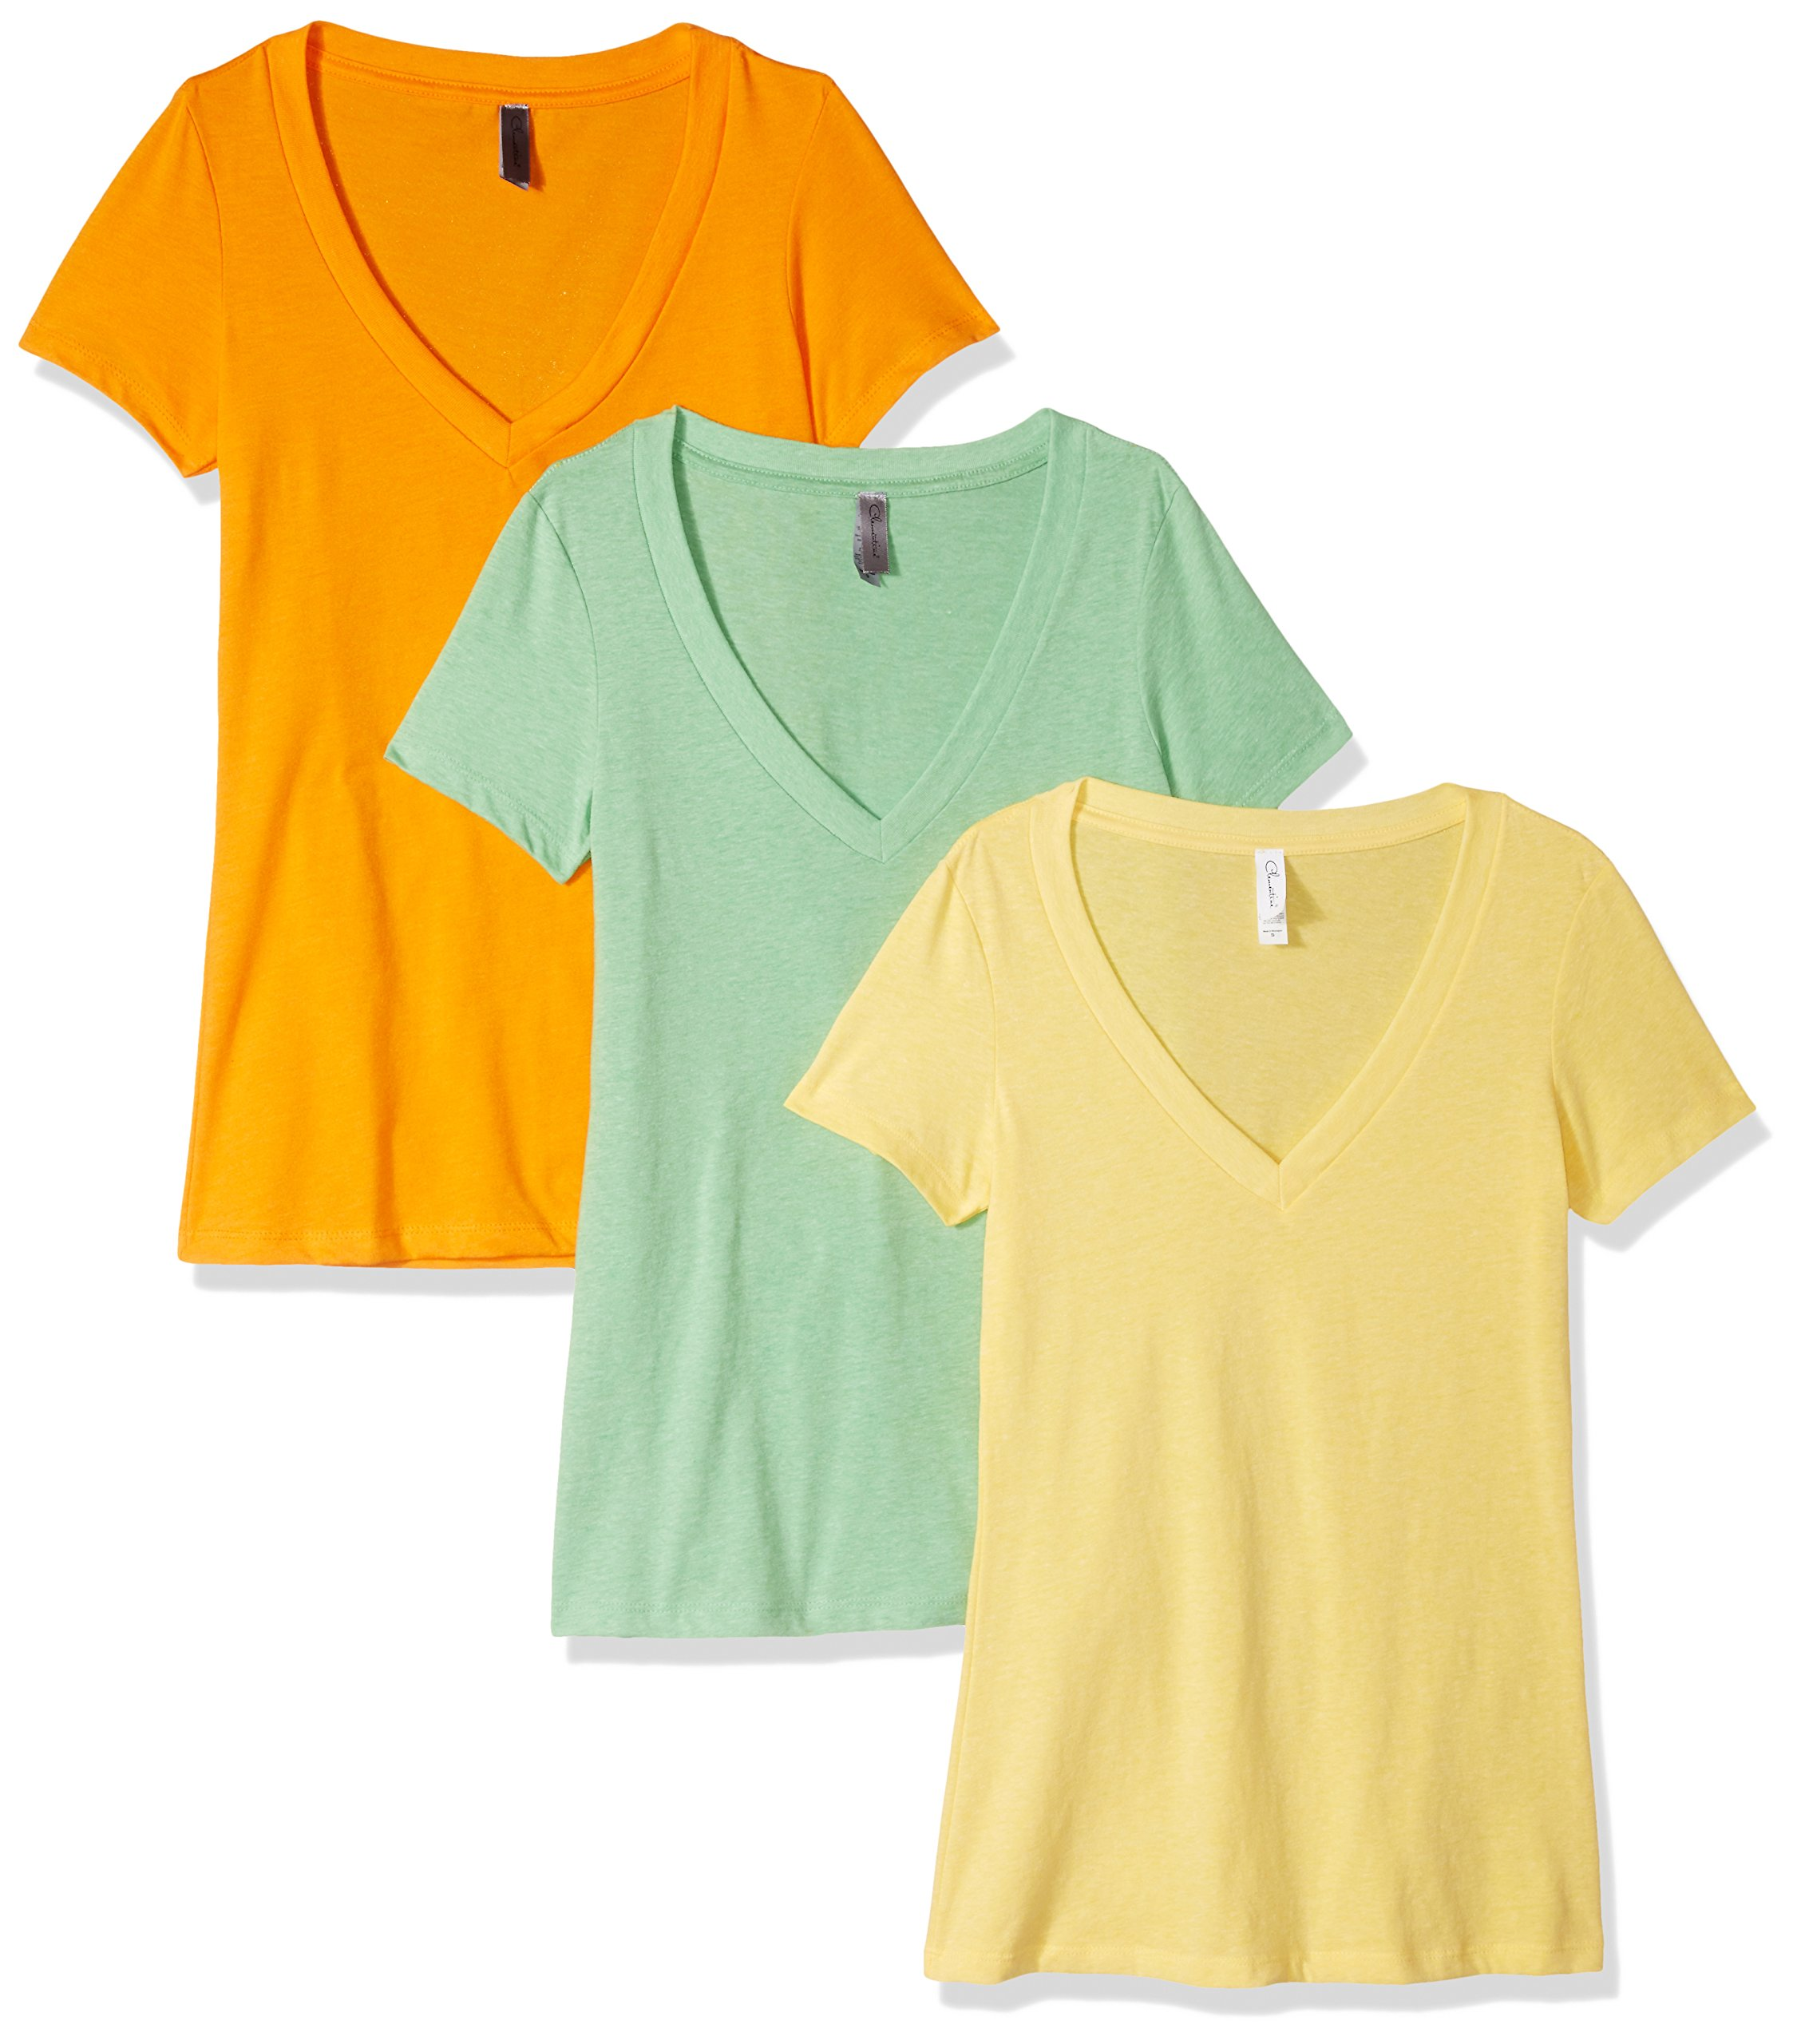 Clementine Apparel Women's Petite Plus Deep V Neck Tee (Pack of 3), Banana Yellow/Apple Green/Orange, L by Clementine Apparel (Image #1)